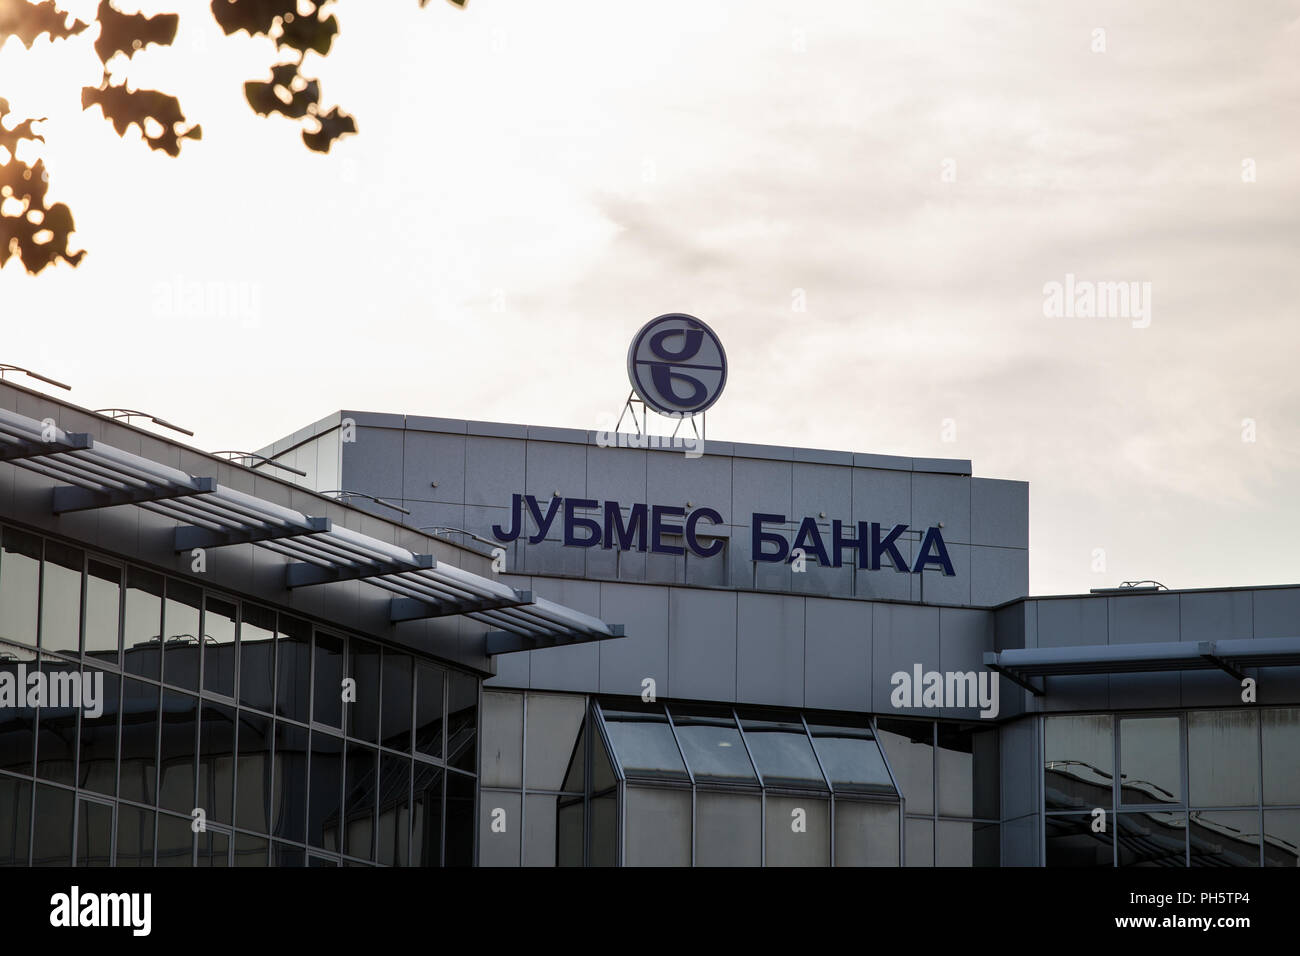 BELGRADE, SERBIA - AUGUST 21, 2018: Jubmes Banka logo on their main office in Belgrade. Jubmes banka is a Serbian bank, providing commercial and inves - Stock Image